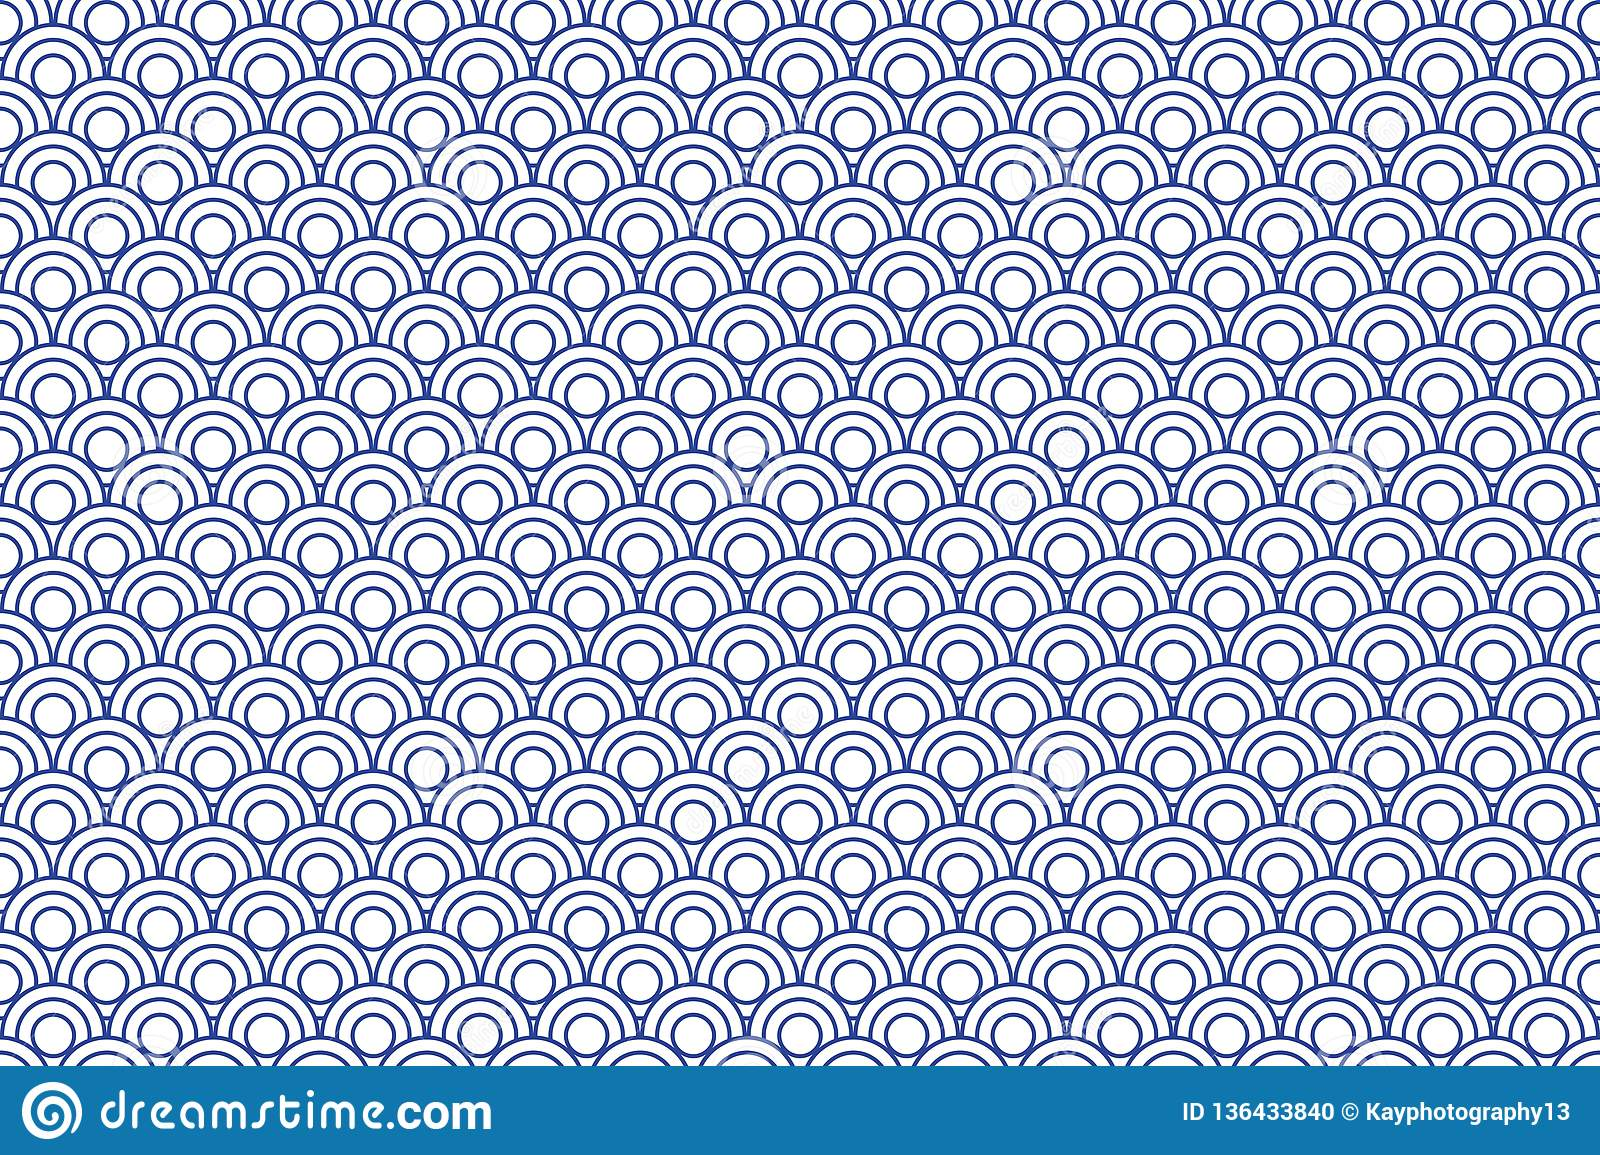 repeating blue pattern stock